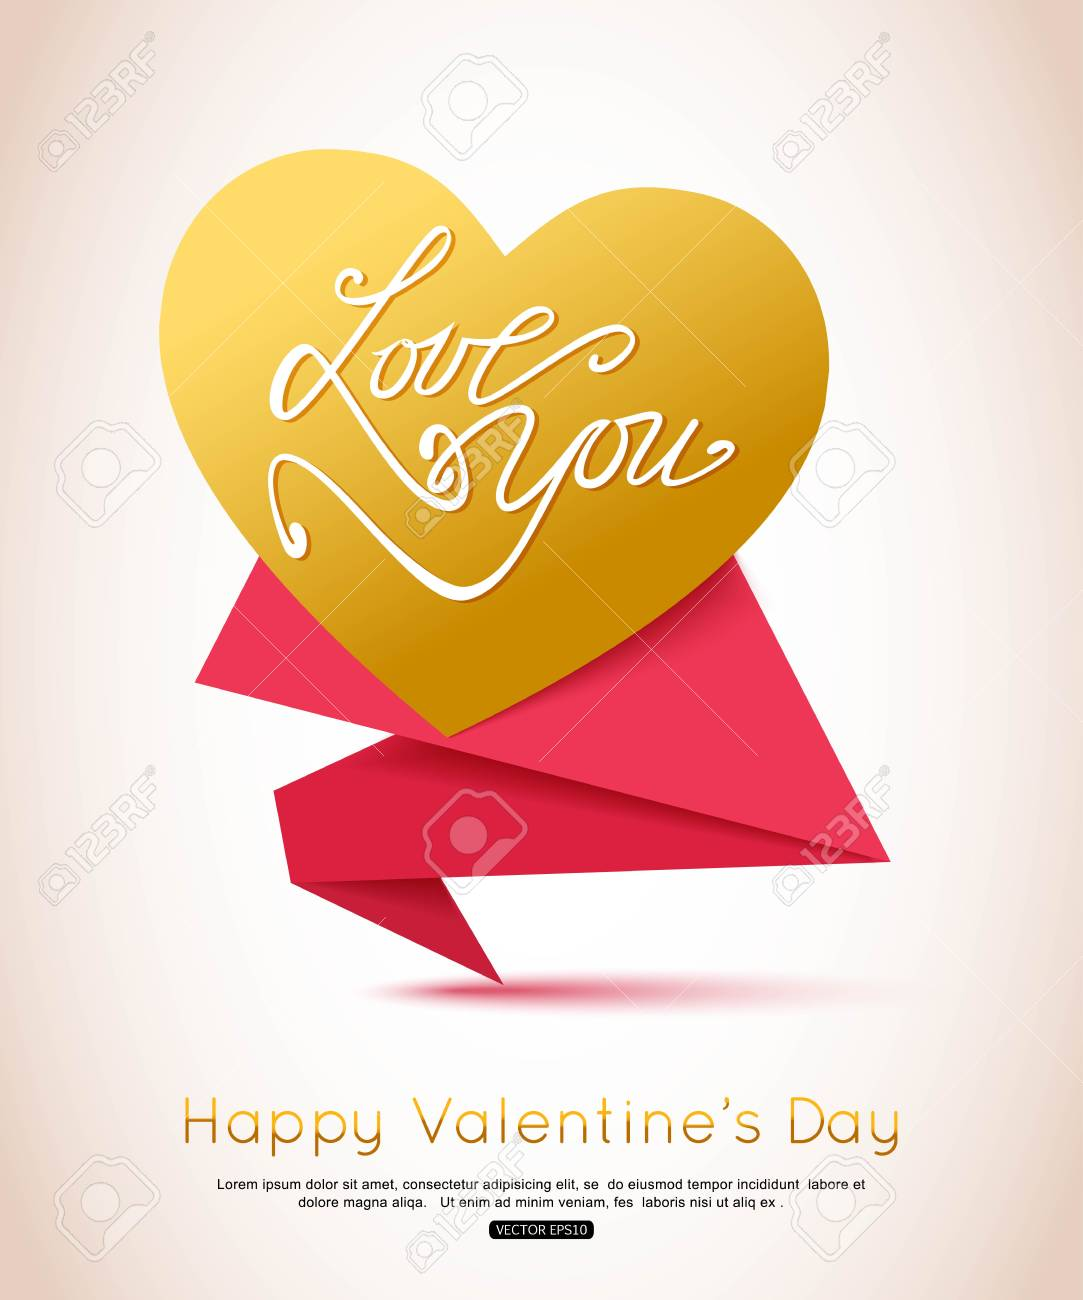 happy valentines day flyer valentines day background gold heart